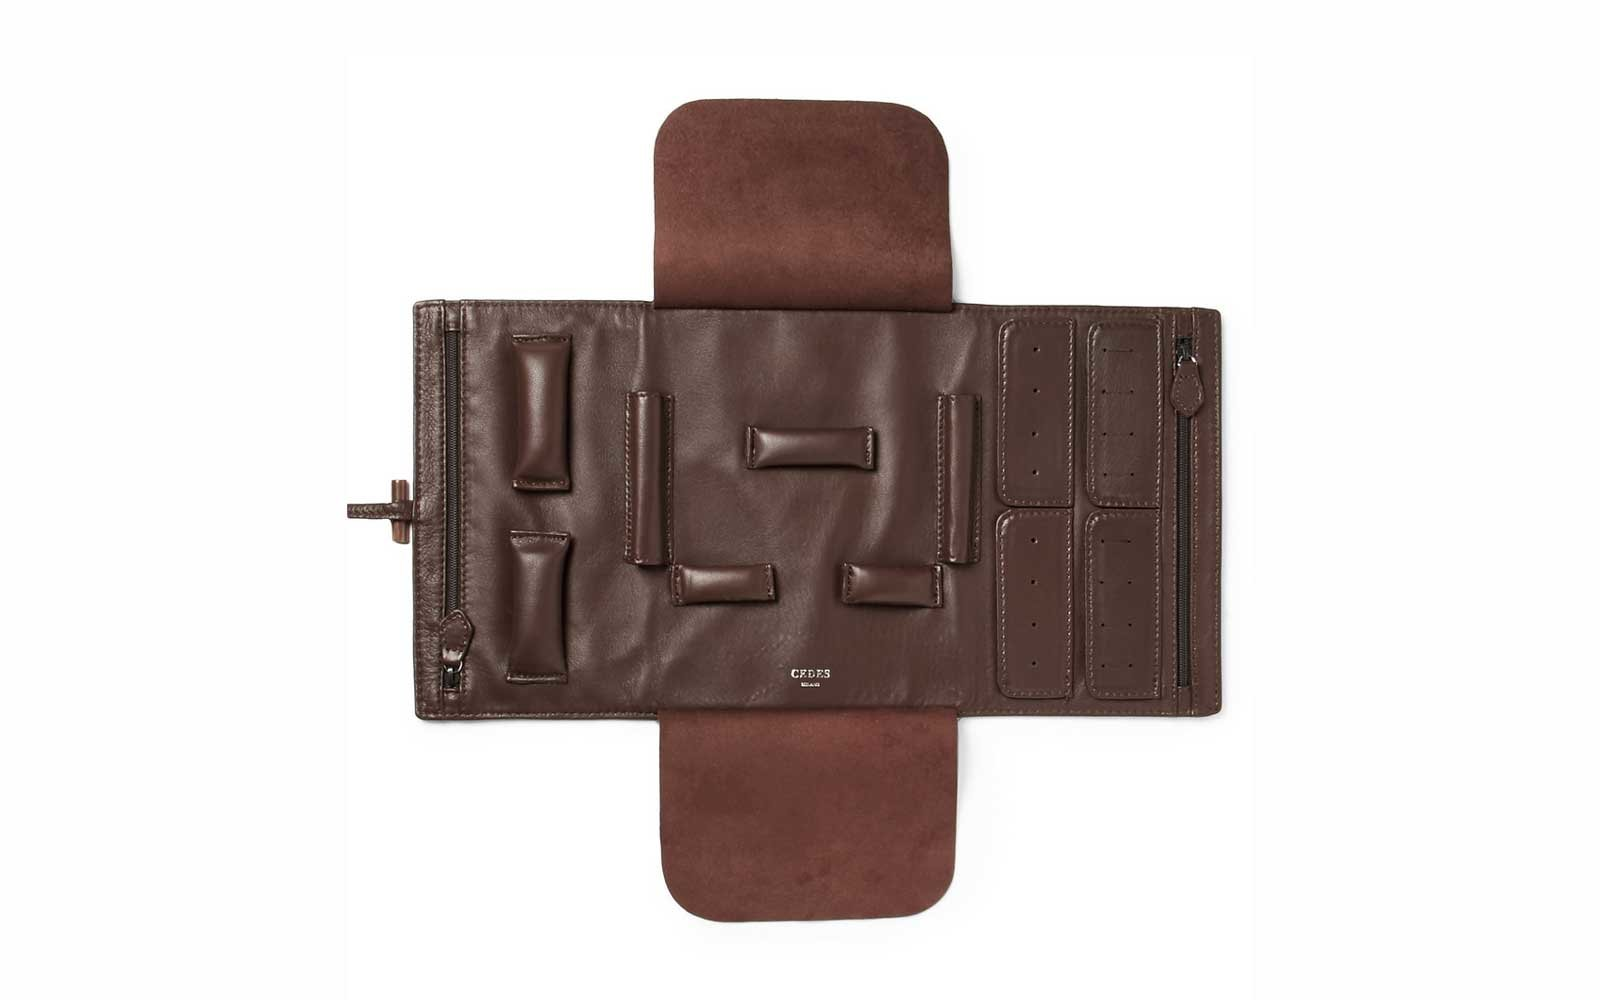 b0d70324aef92 Cedes Milano Leather Jewelry Roll. travel jewelry case cedes